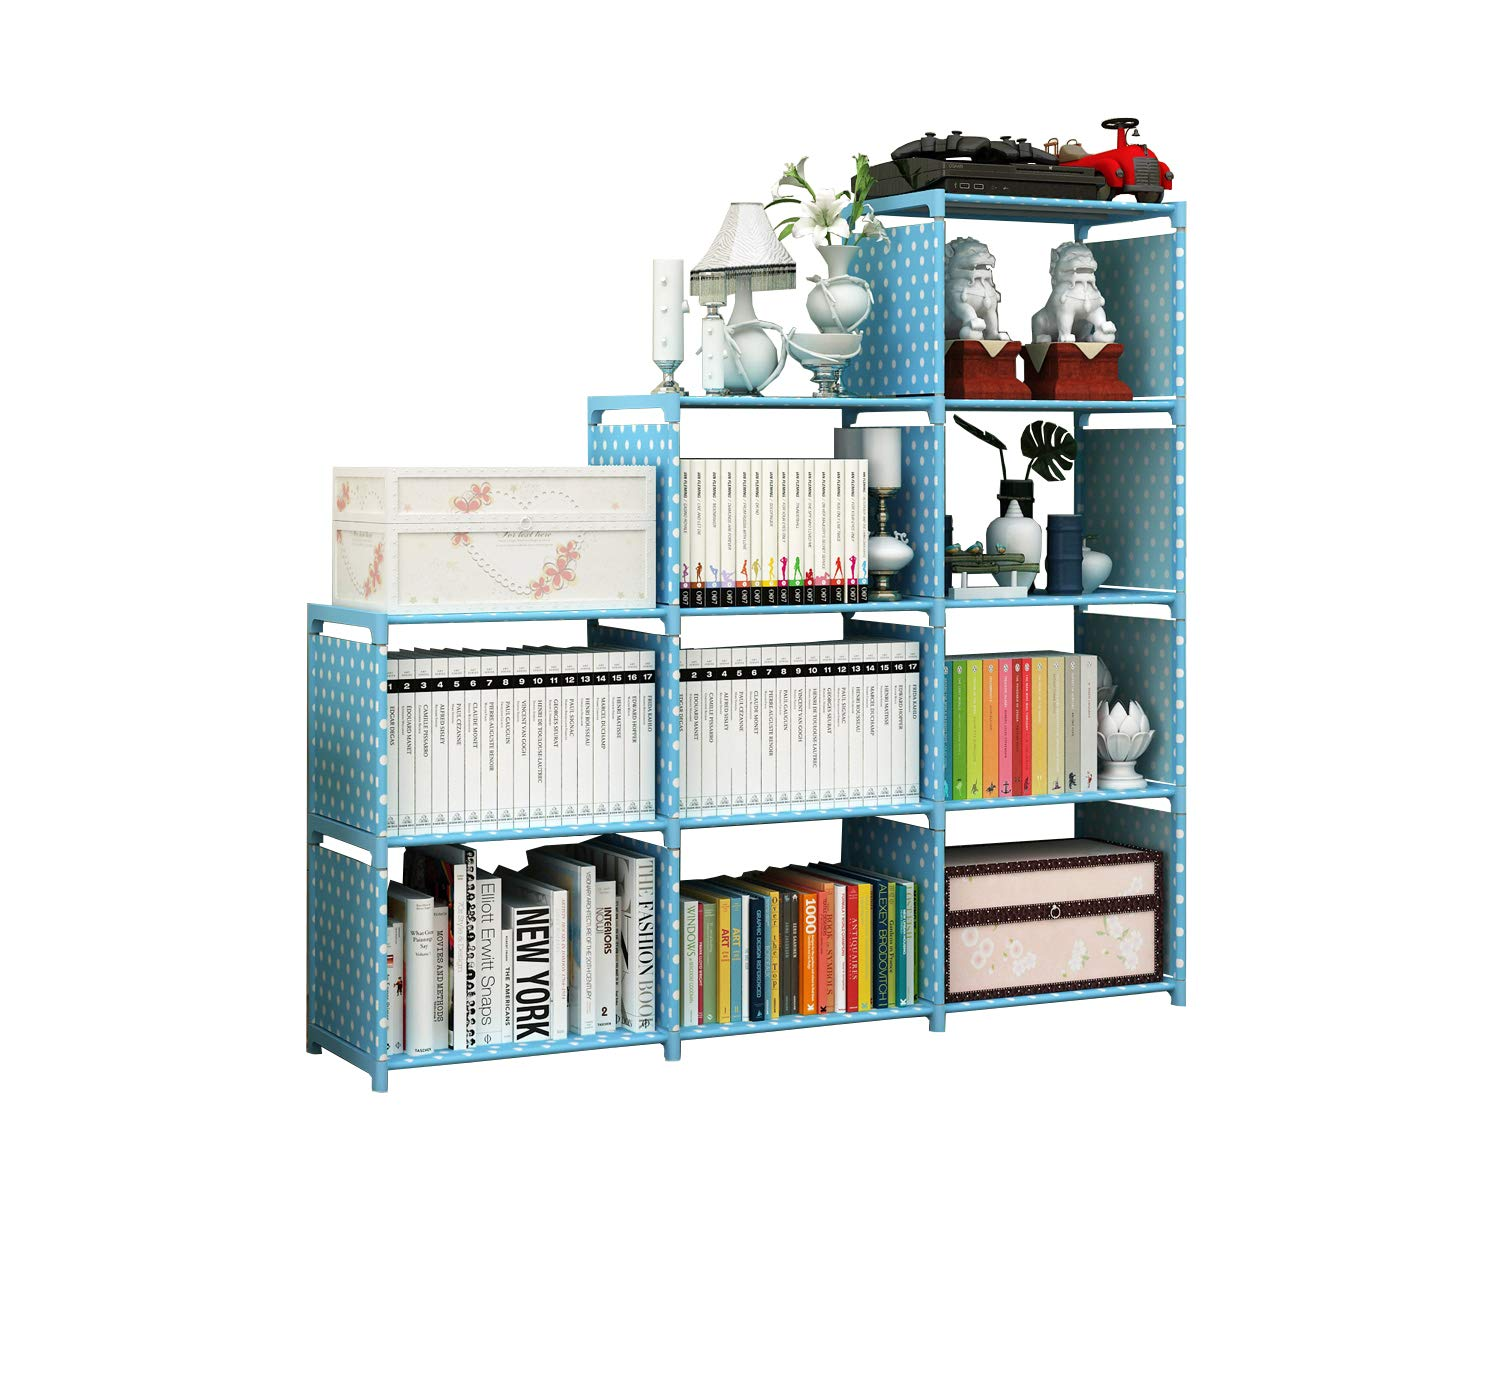 JK furniture DIY Adjustable 9-Cubes Shelf, Bookshelf, Bookcase, Shelves Steel Tube Combination (Blue)